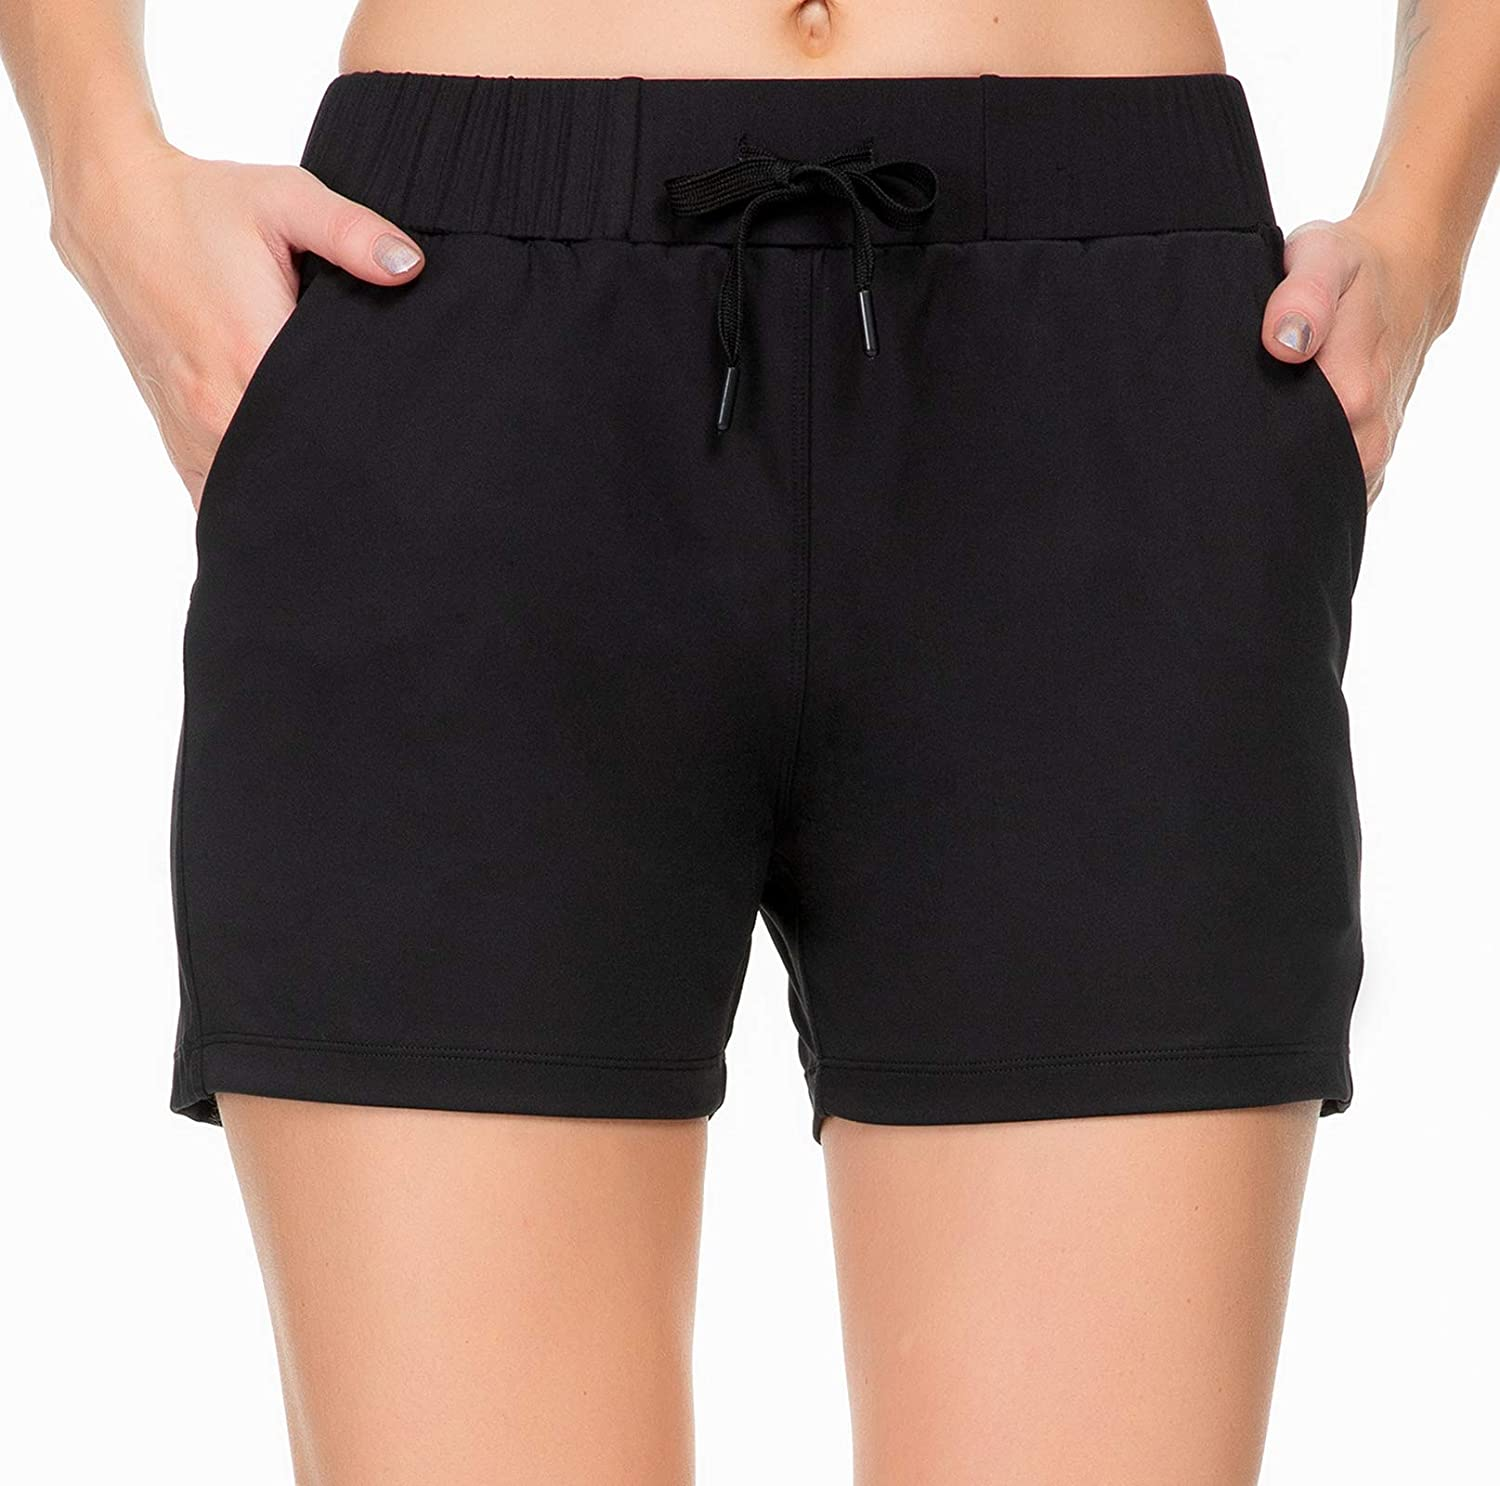 Kcutteyg Workout Shorts for Women with 3 Pockets A Running Ranking integrated 1st place Super popular specialty store Yoga